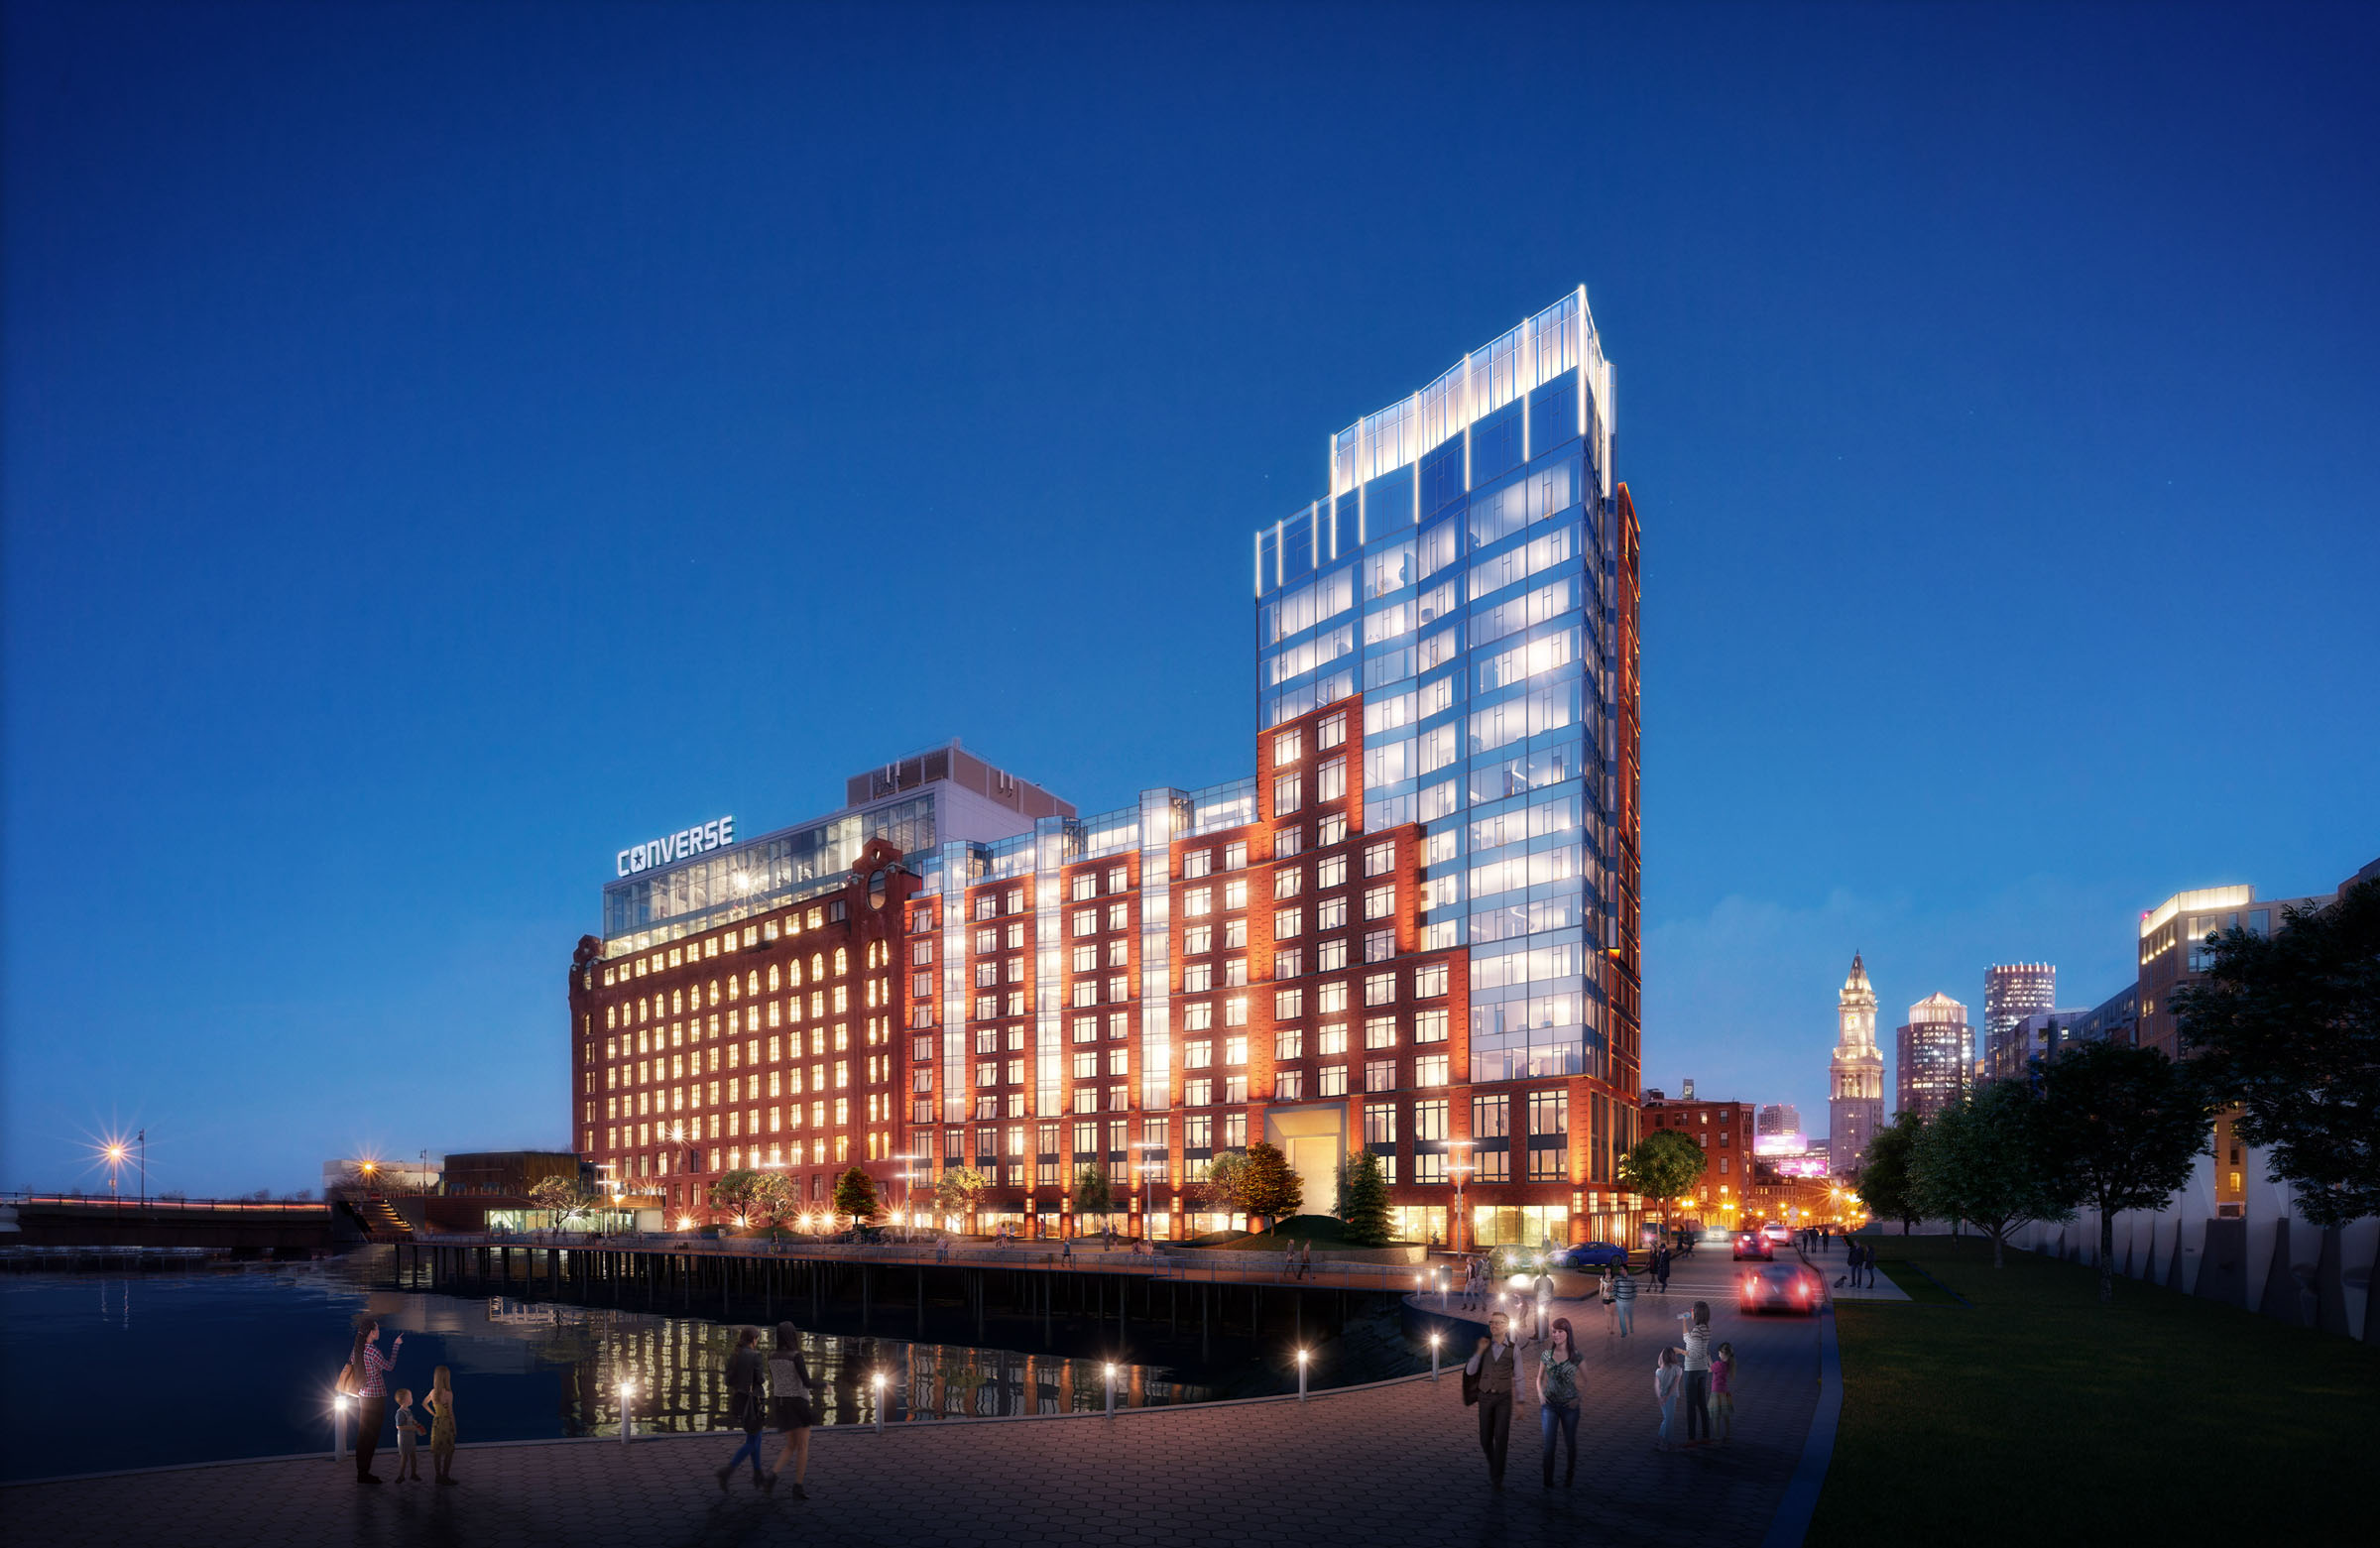 Lovejoy wharf 131 beverly street bulfinch triangle boston office retail  luxury condominium development related beal ... 9e2ce78e9